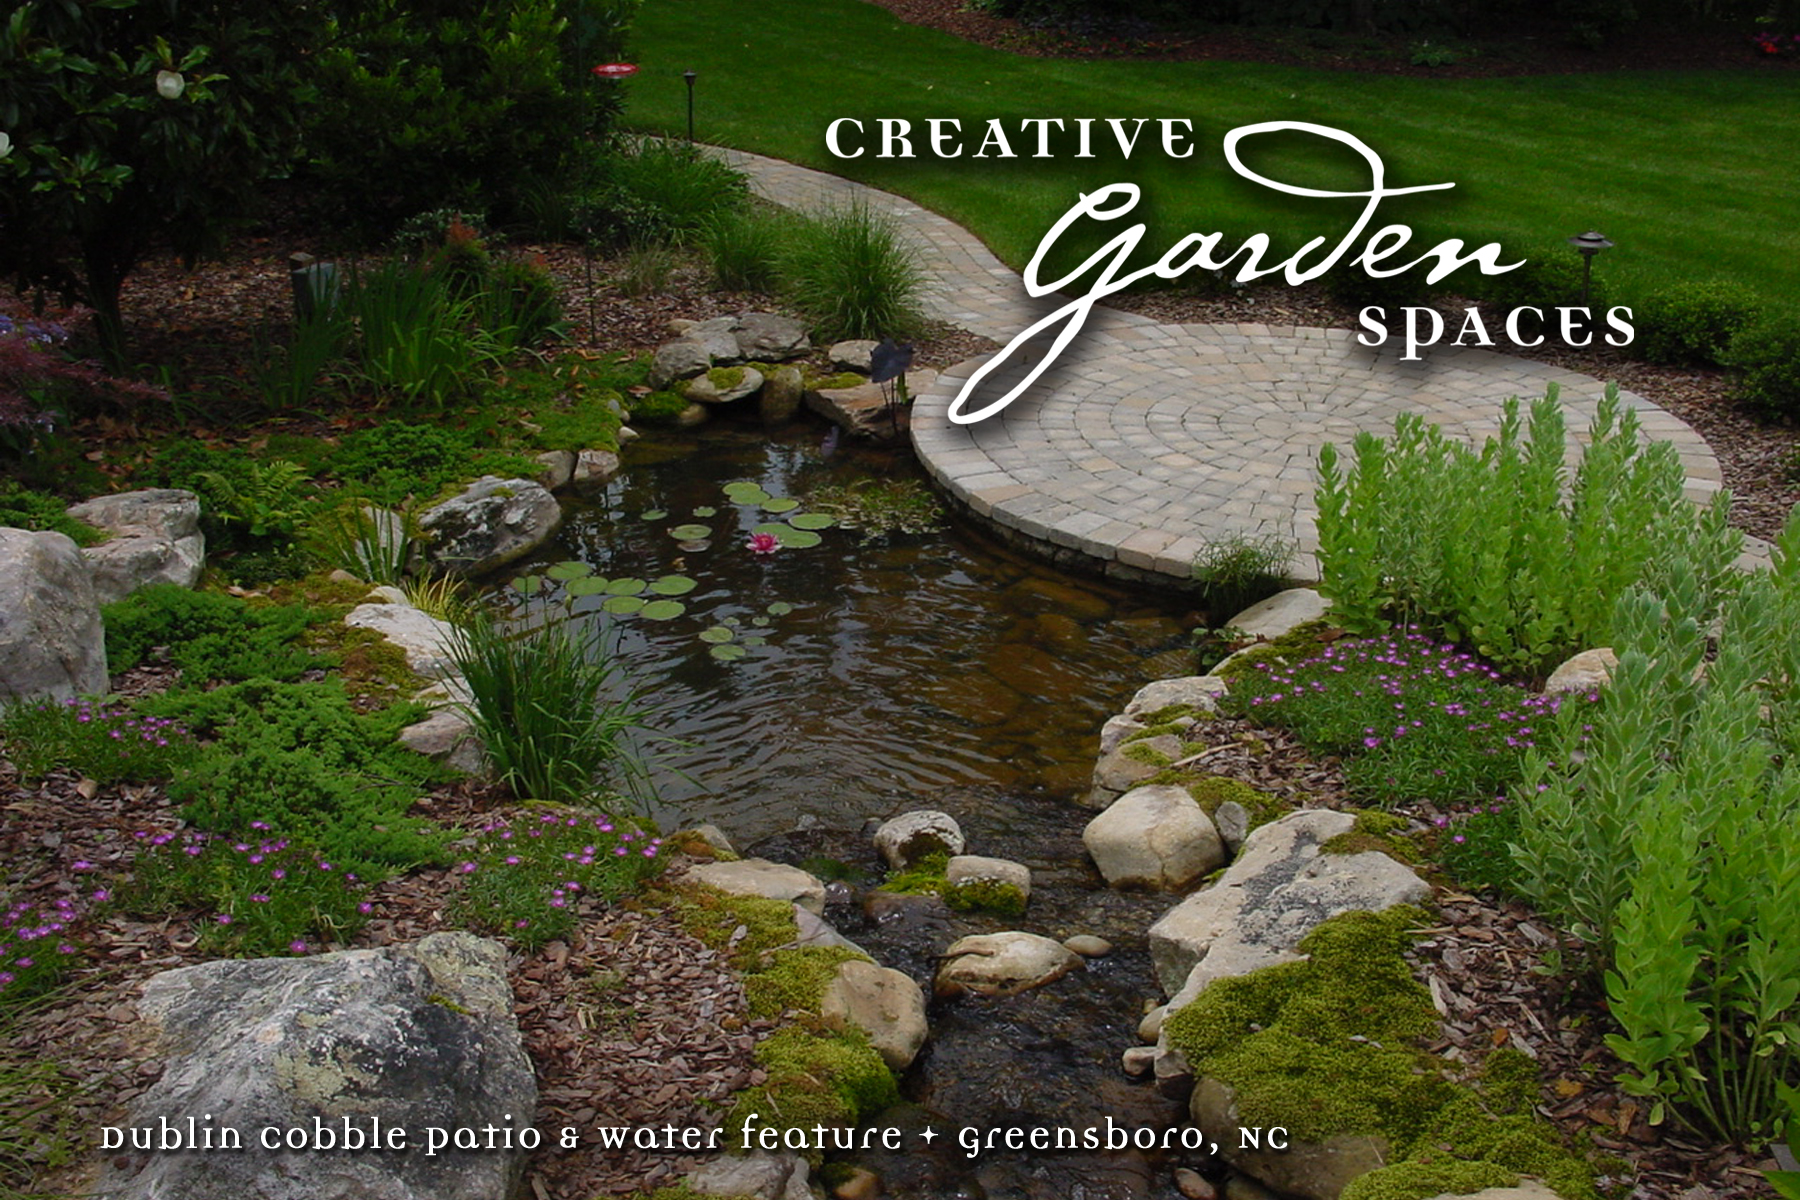 Creative Garden Spaces Inc, Lake Jeanette, Greensboro NC, water feature, natural waterfall, water garden, natural looking stream, koi pond, paver patio